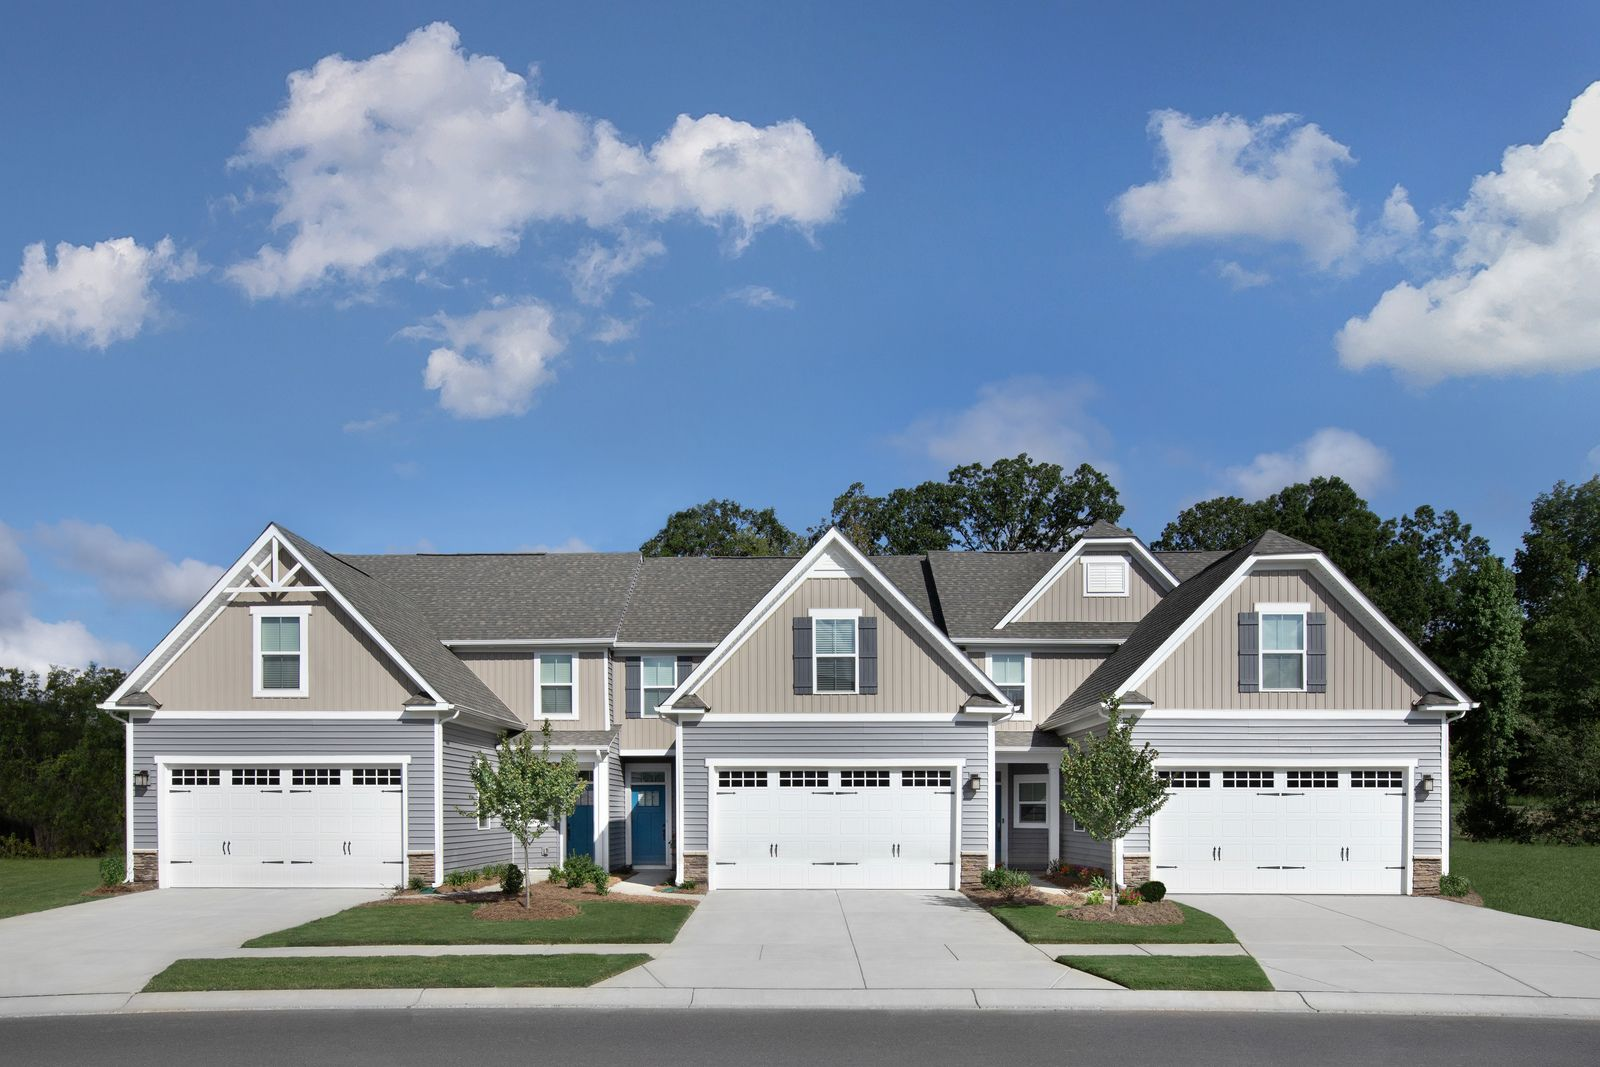 BRAND NEW LUXURY HOMES IN A PRIME LOCATION!:Welcome to the Villas at Wistar Glen;a low-maintenance community w/ luxury villas & first-floor owner's suites. Minutes to Willow Lawn, from the upper $300s.Join the VIP List to learn more!